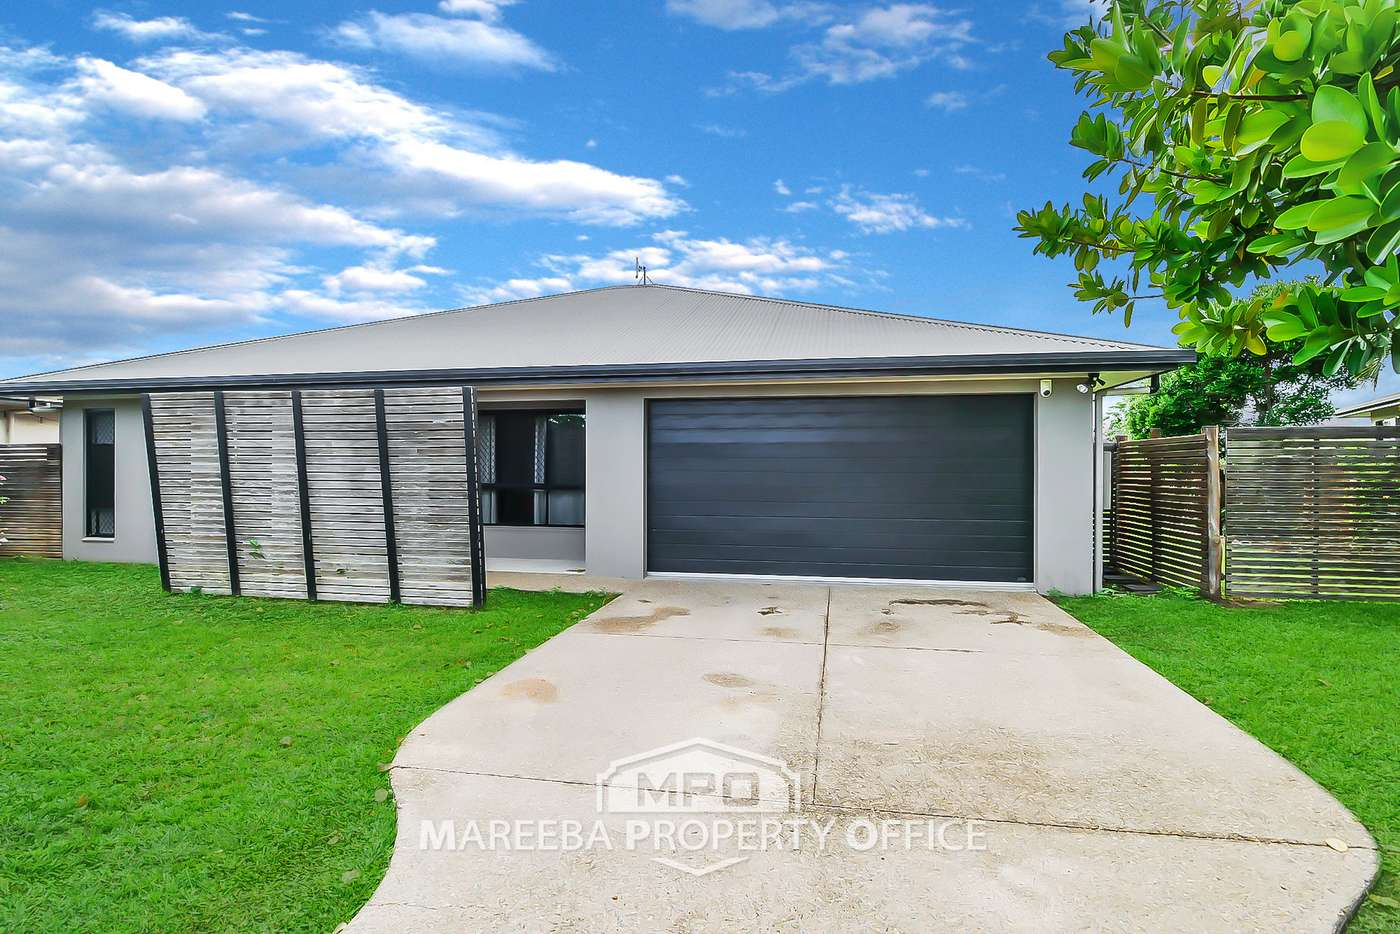 Main view of Homely house listing, 7 Eli Close, Mareeba QLD 4880